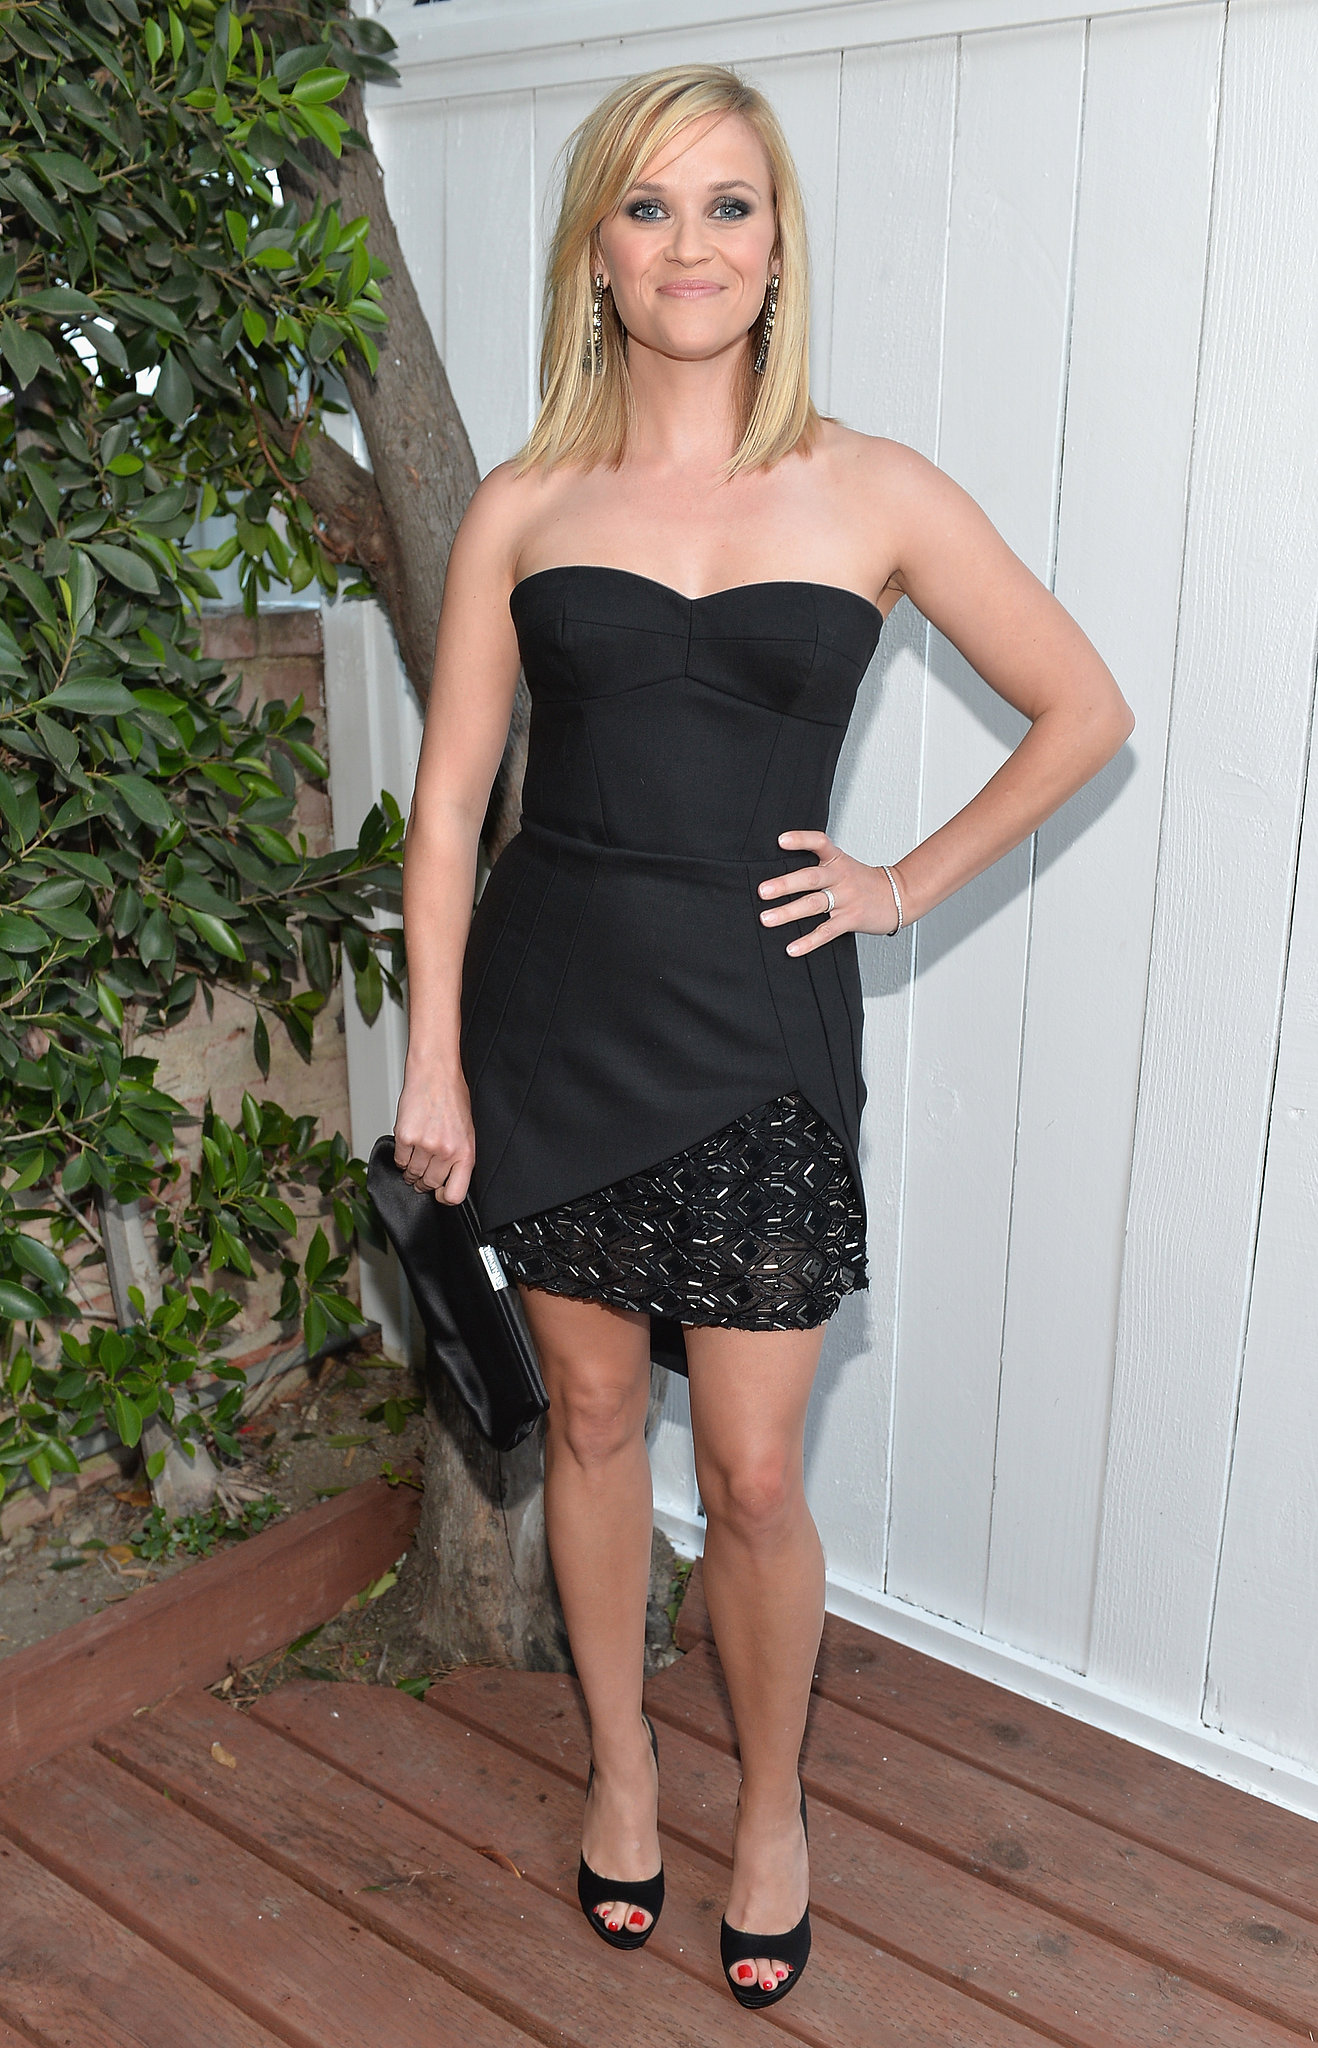 Reese Witherspoon donned the sexiest kind of LBD — one with a sweetheart neckline and embellishments — to Benjamin Millepied's LA Dance Project inauguration benefit gala in LA in June 2013.